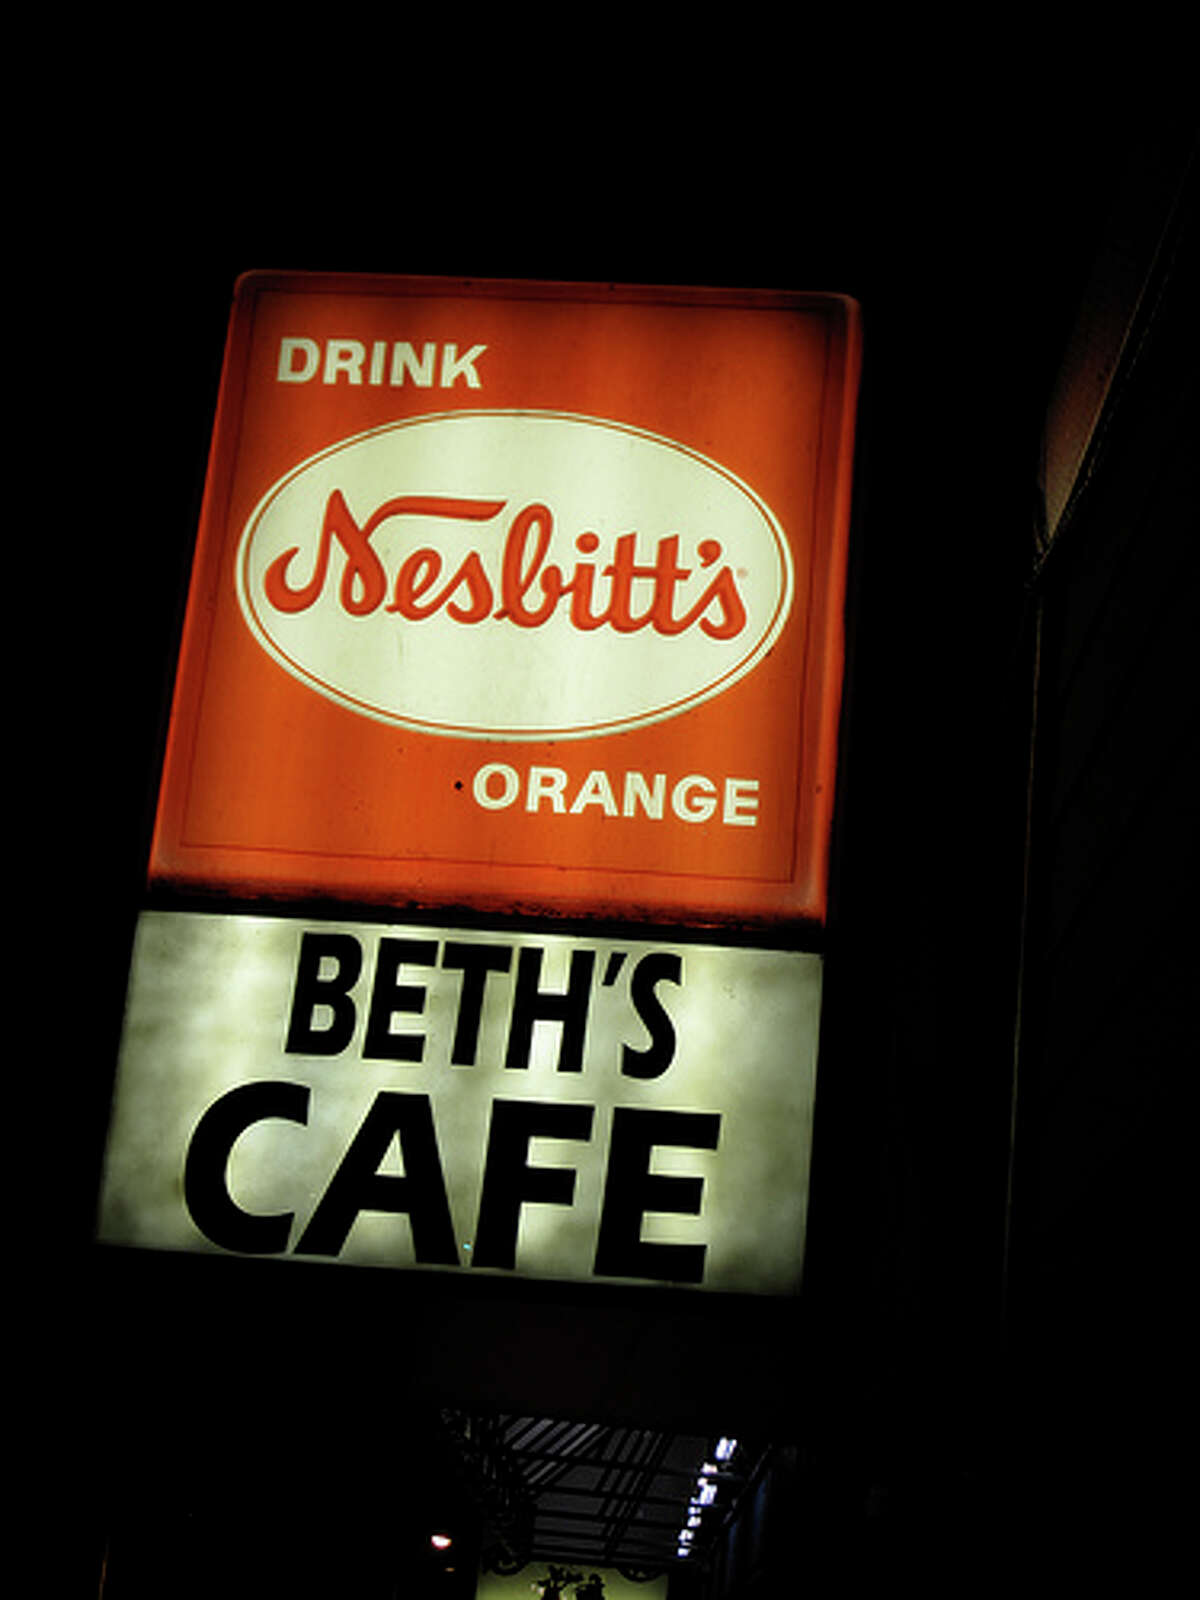 BEST HANGOVER BREAKFAST: Beth's Cafe on Highway 99 is Seattle's quintessential greasy spoon, featuring the Everest of omelets. (Think you can eat 12 eggs?) Beth's is open all night, so you don't have to wait for the next morning to start your hangover remedy. More at BethsCafe.com.